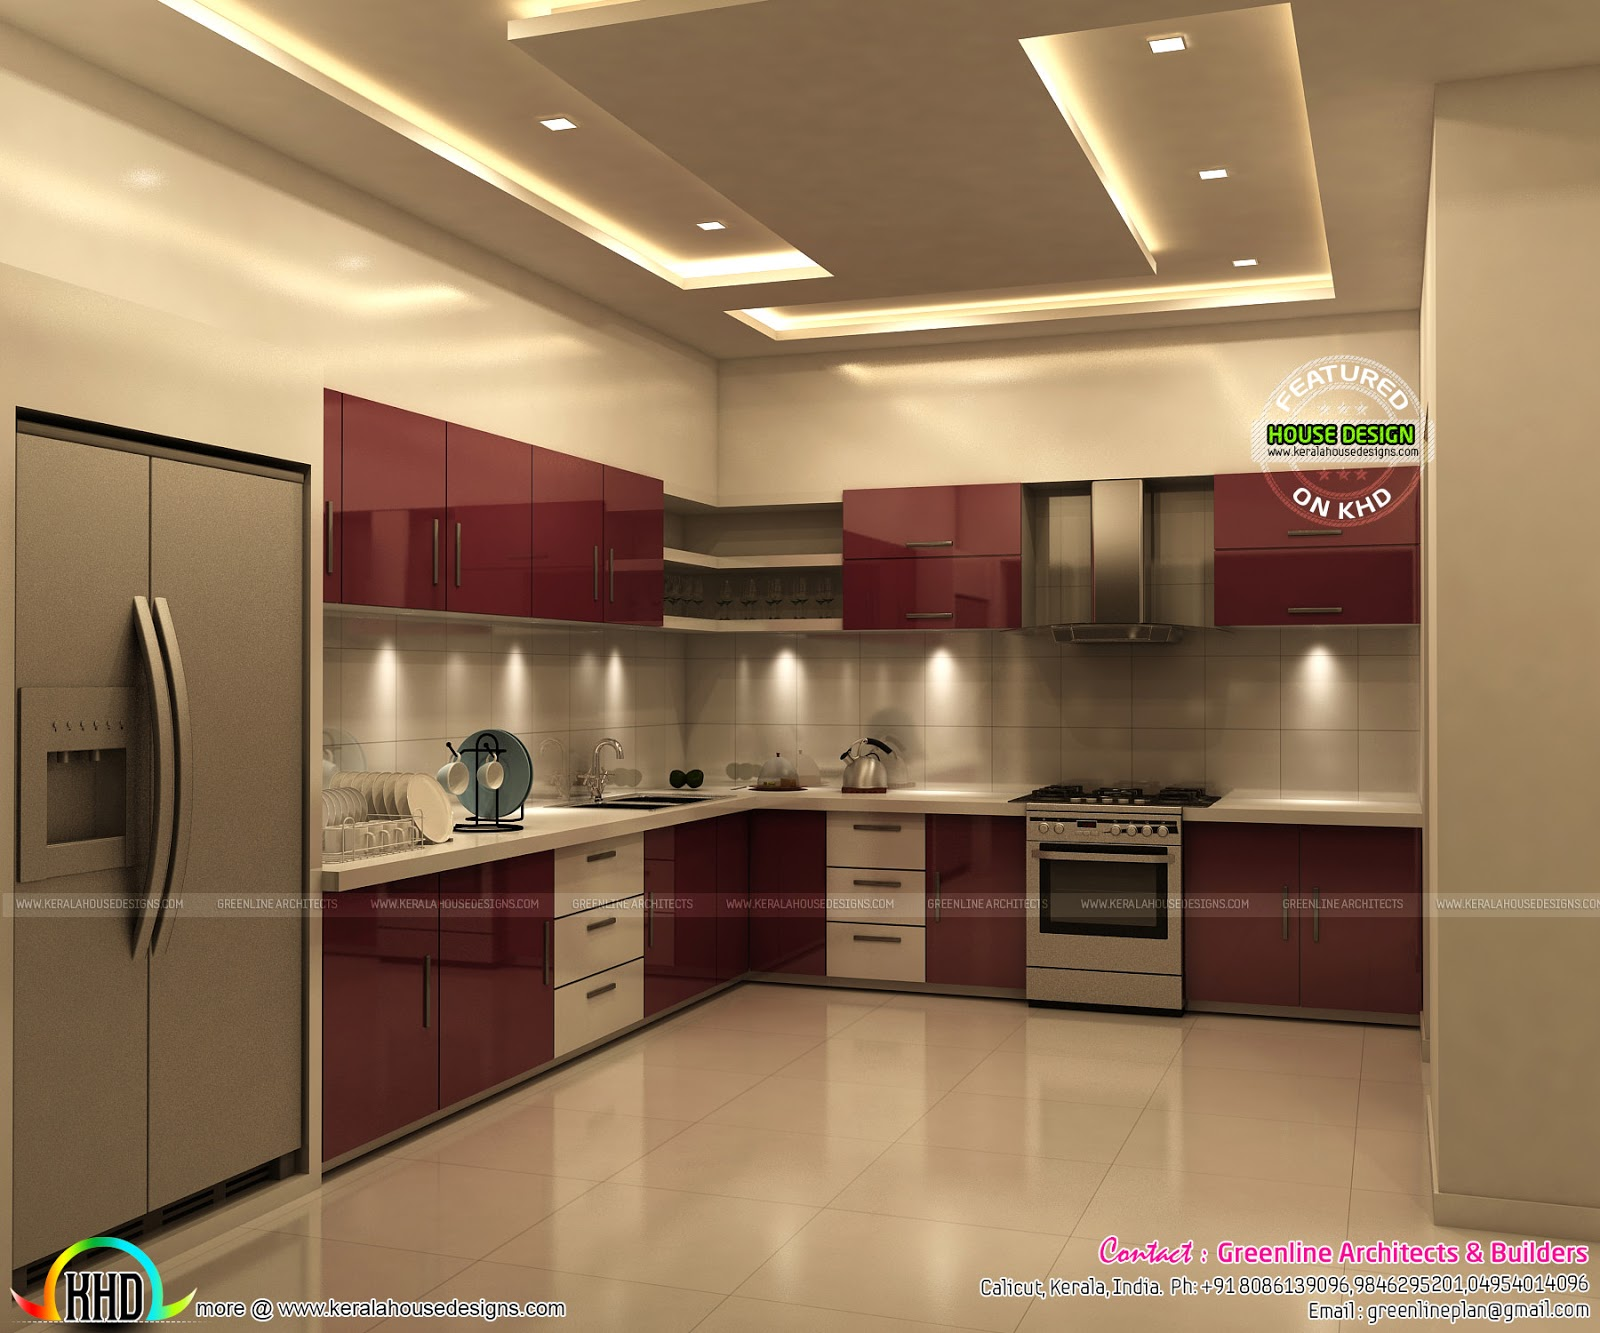 Superb kitchen and bedroom interiors kerala home design for M design interiors